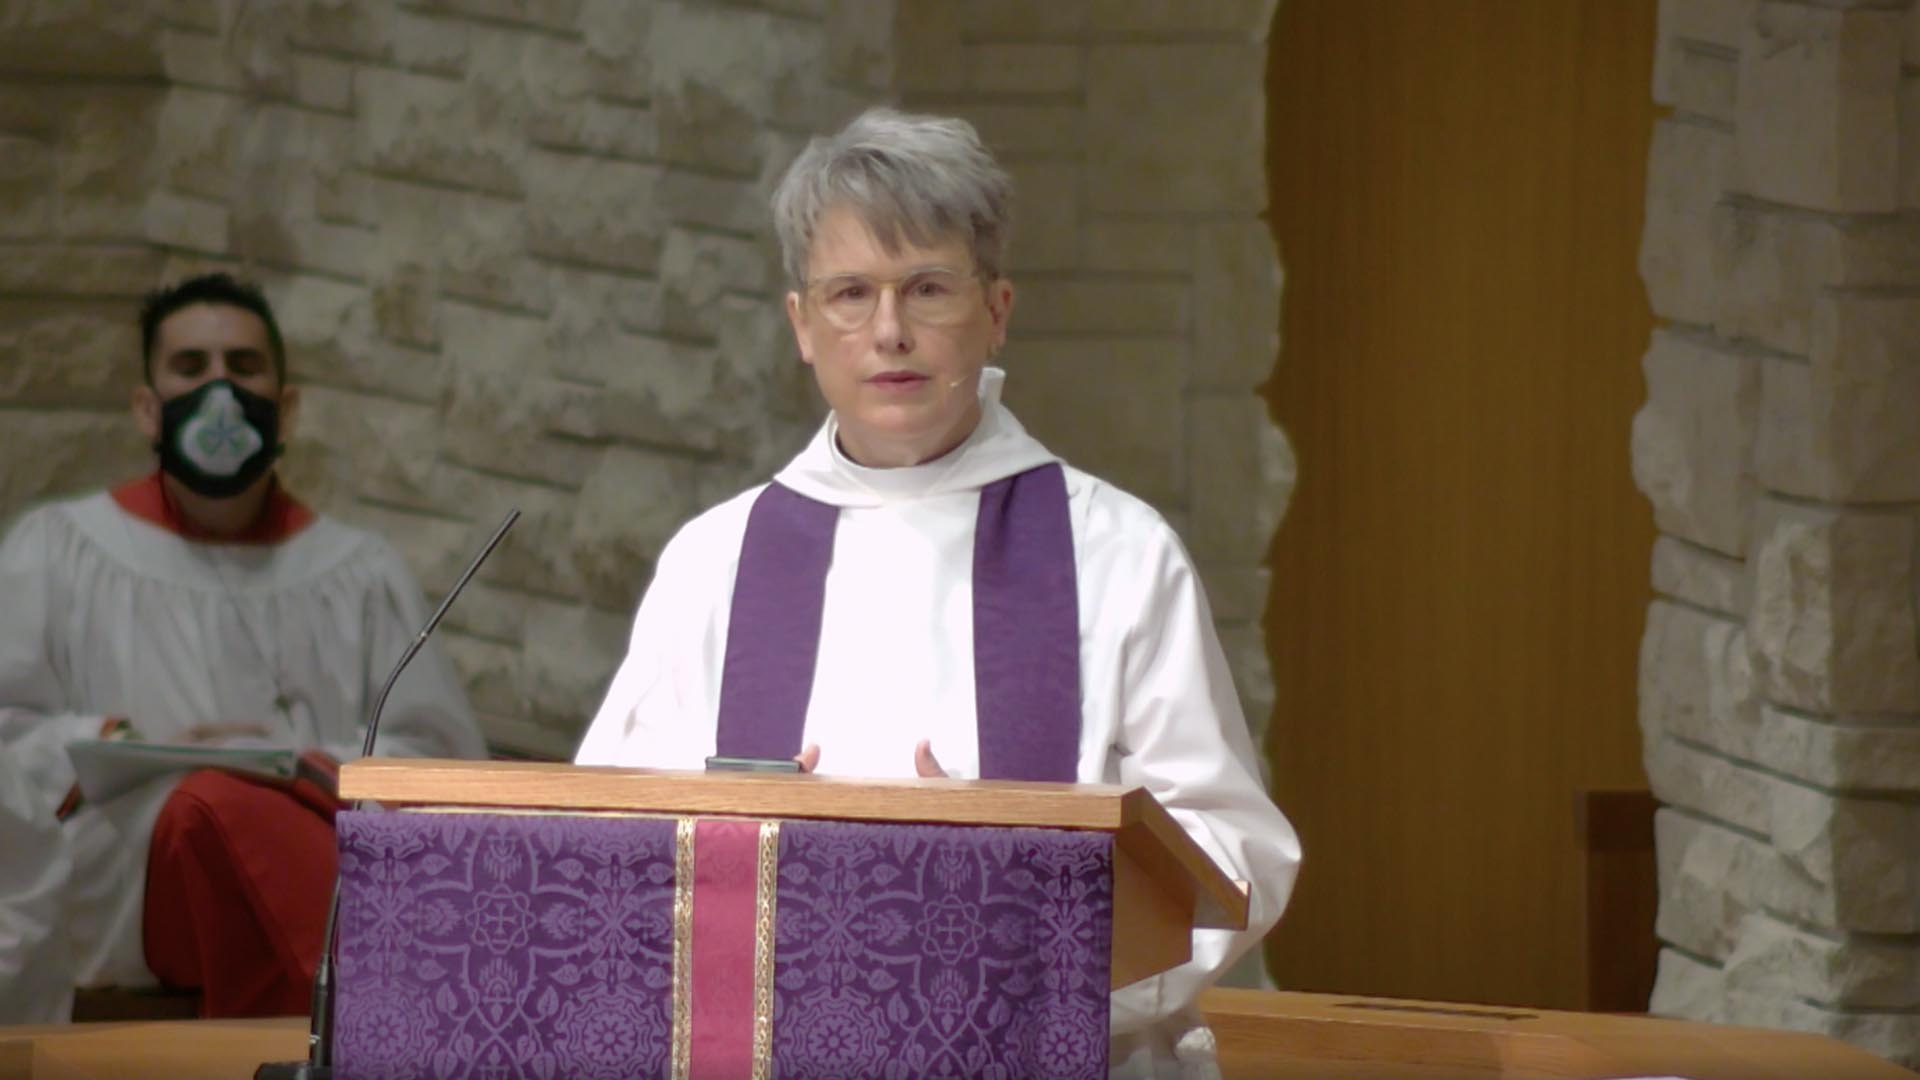 Jesus Comes Tenderly - Sermon by the Rev. Louise Samuelson